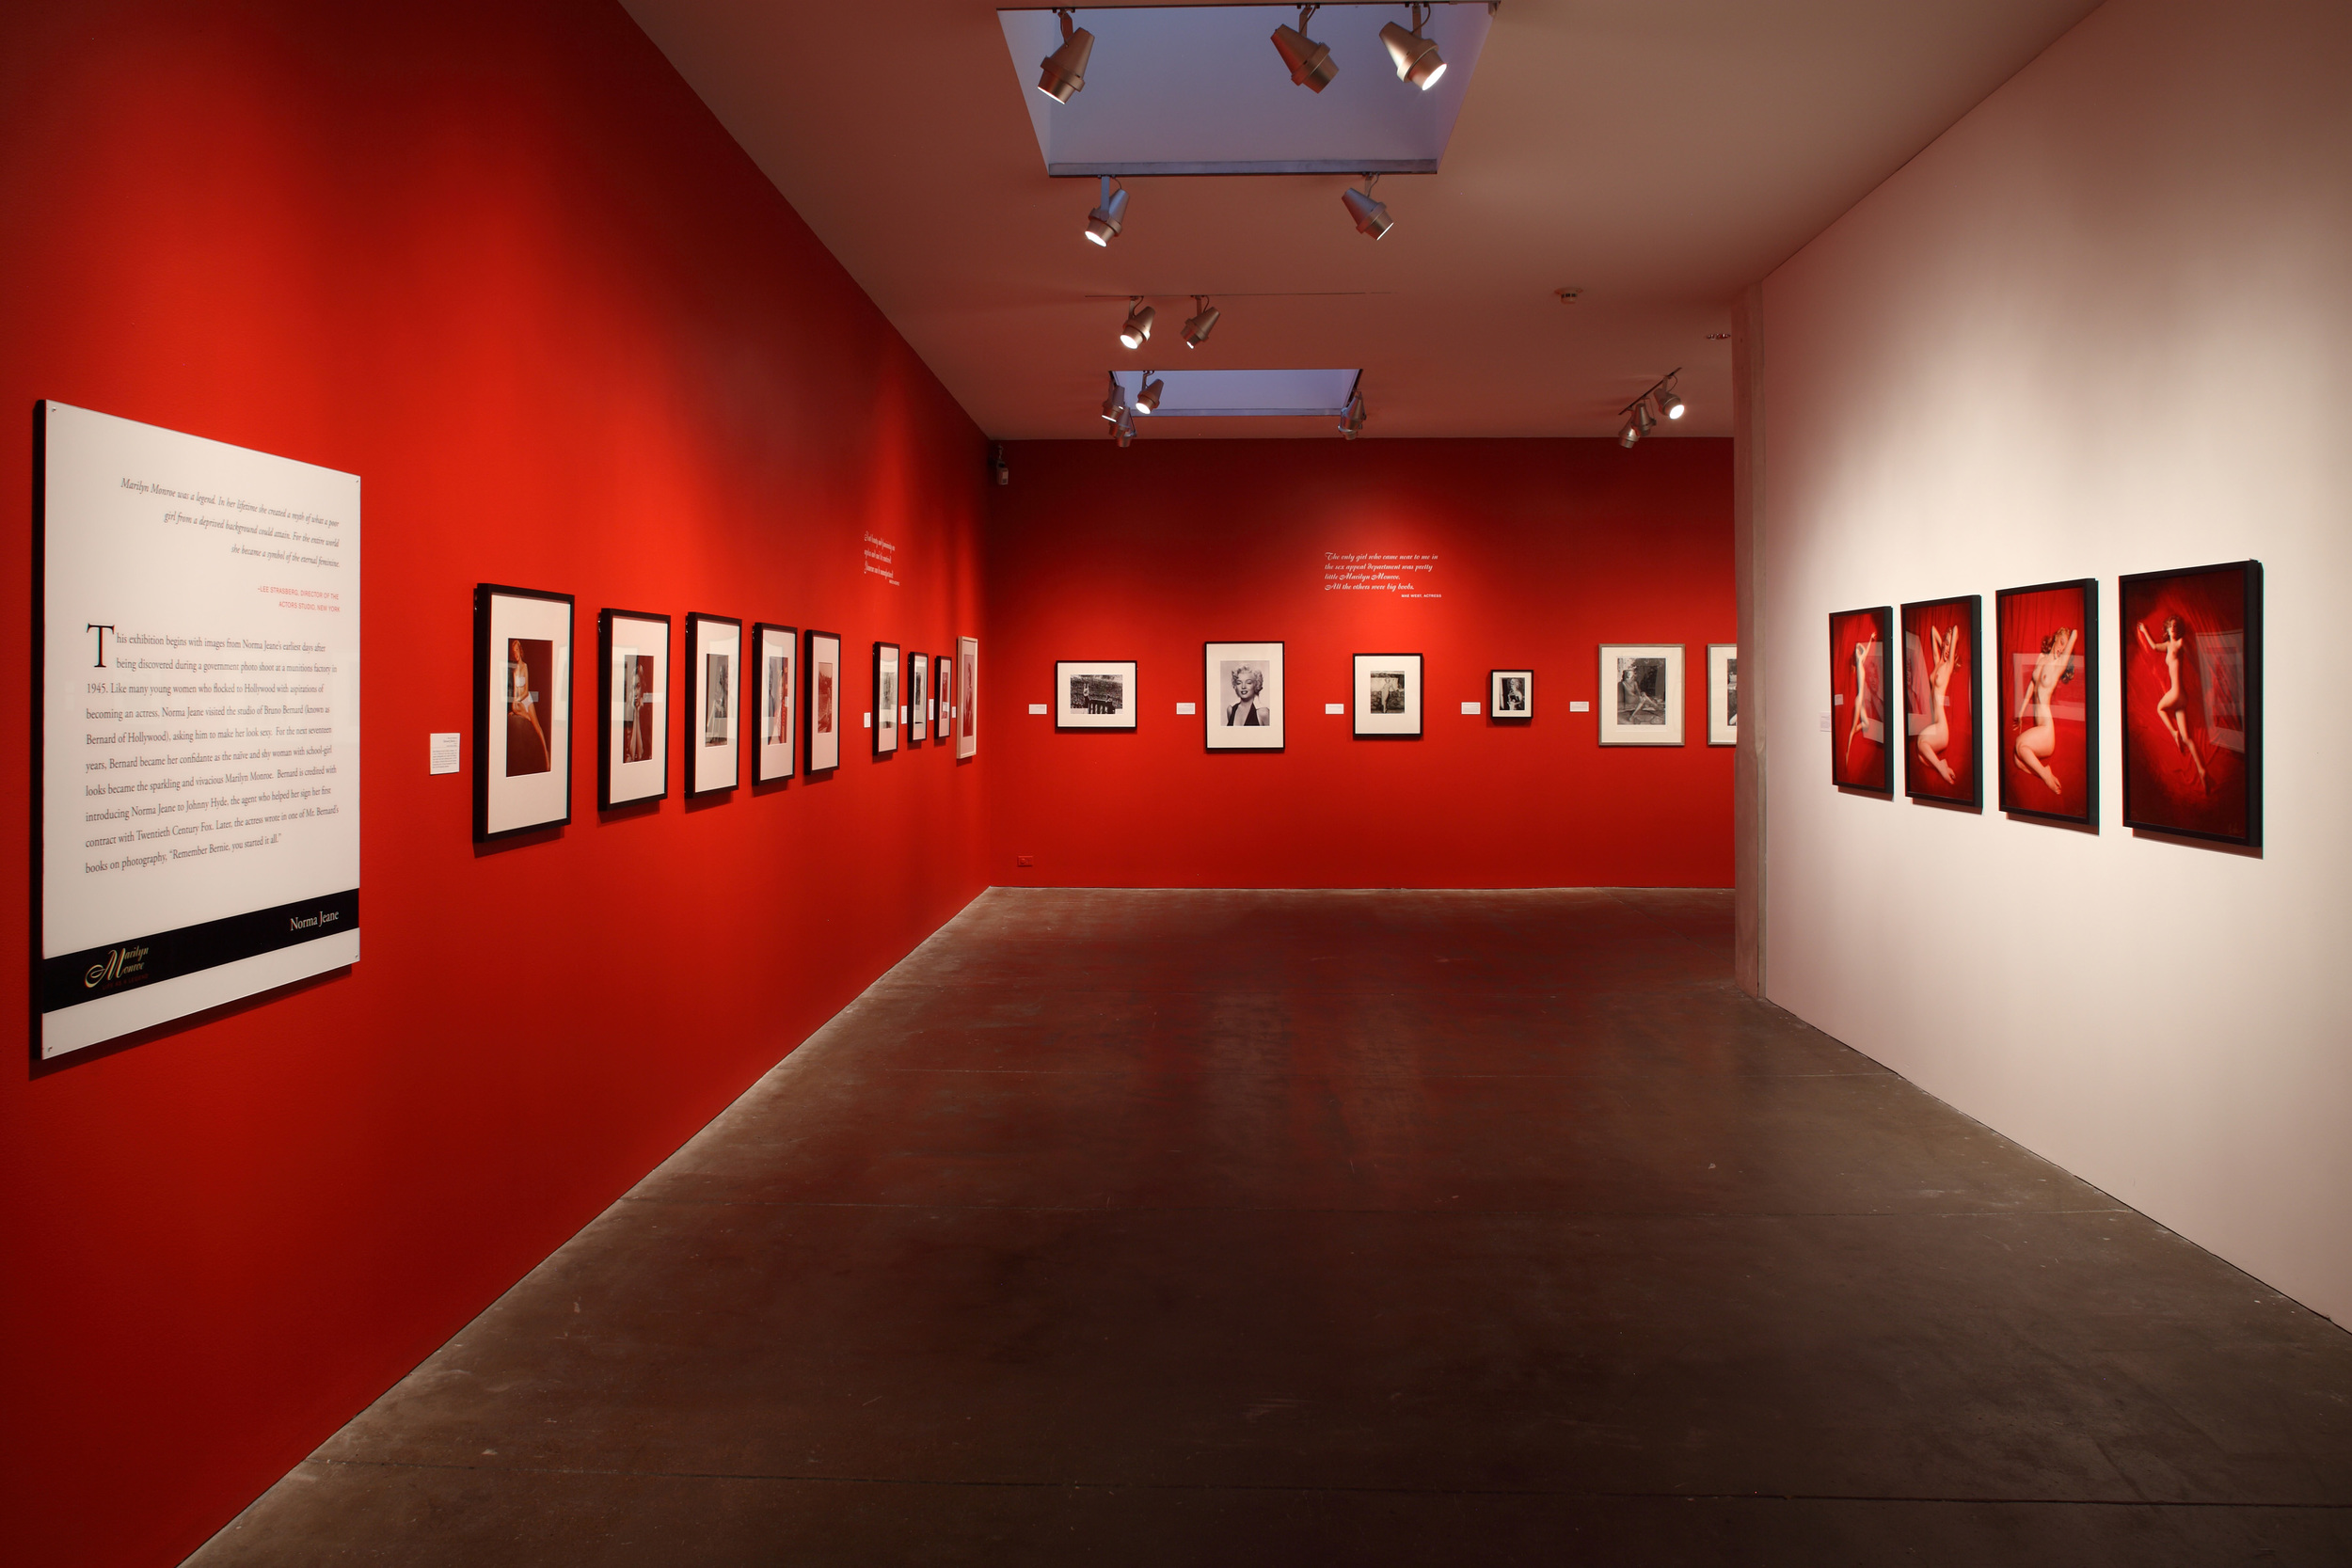 Marilyn Monroe - Life as a Legend at The Andy Warhol Museum, Pittsburgh, 2010 0004.JPG